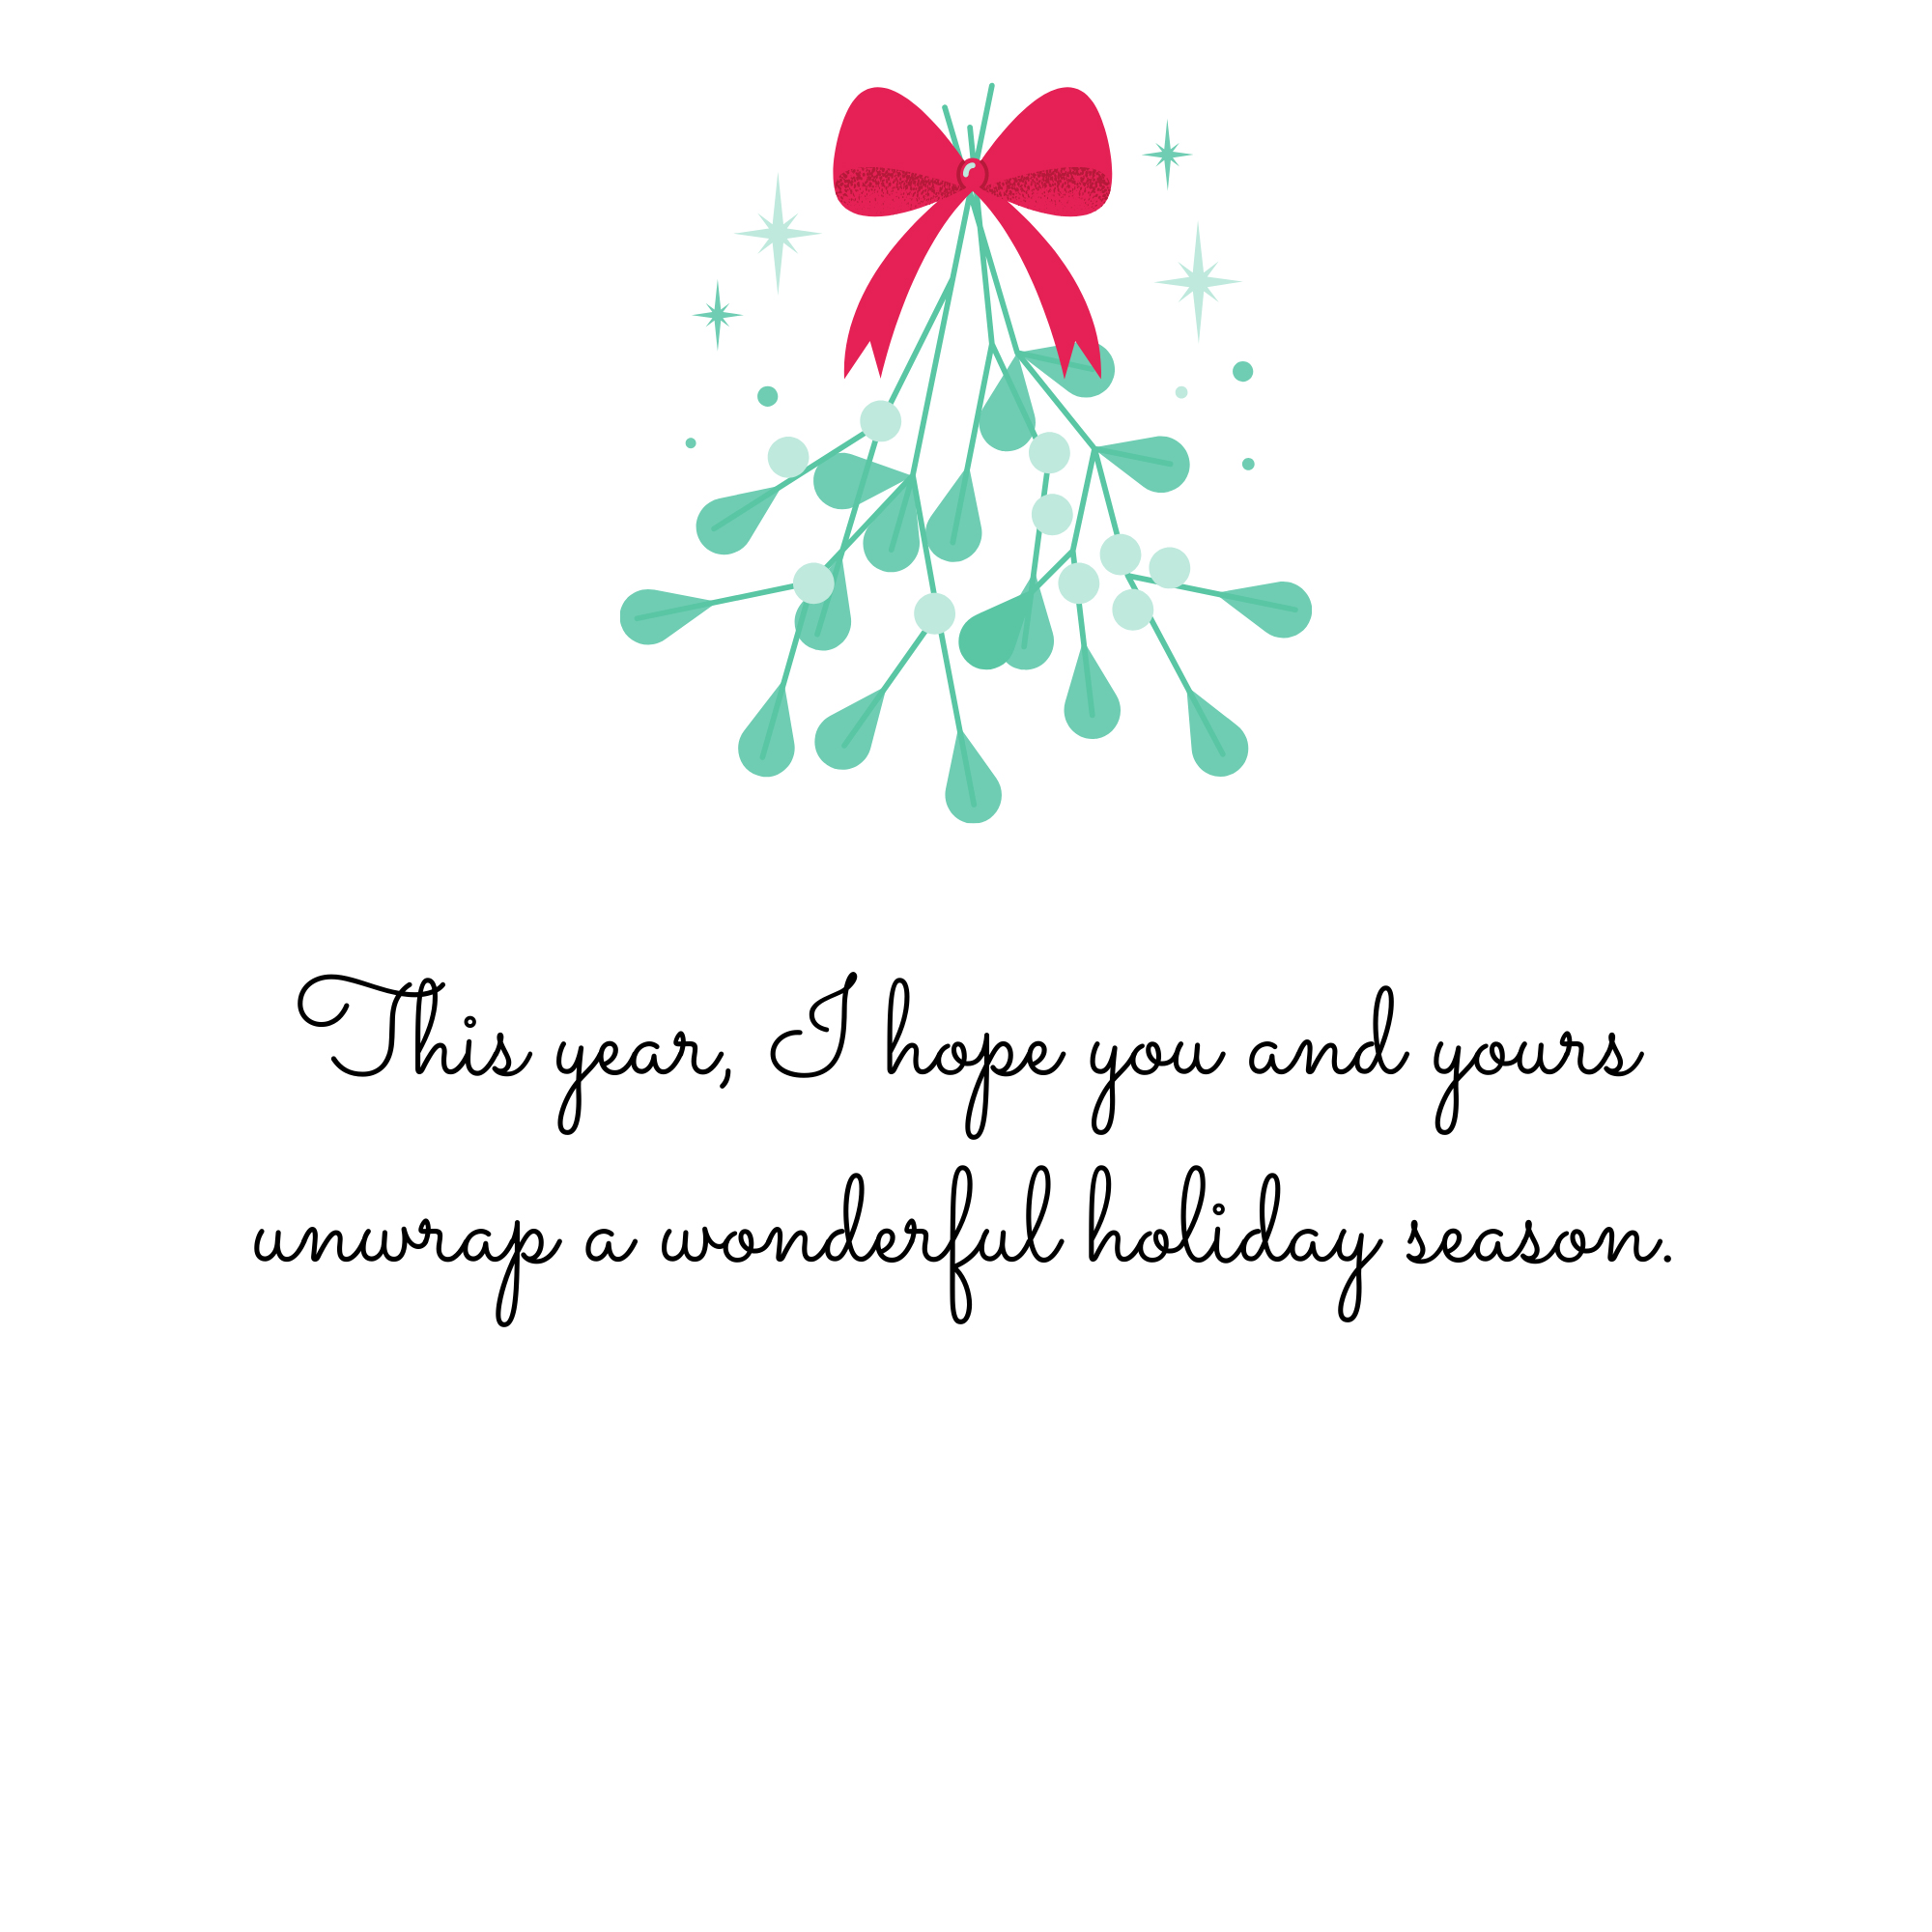 This year, I hope you and yours unwrap a wonderful holiday season.